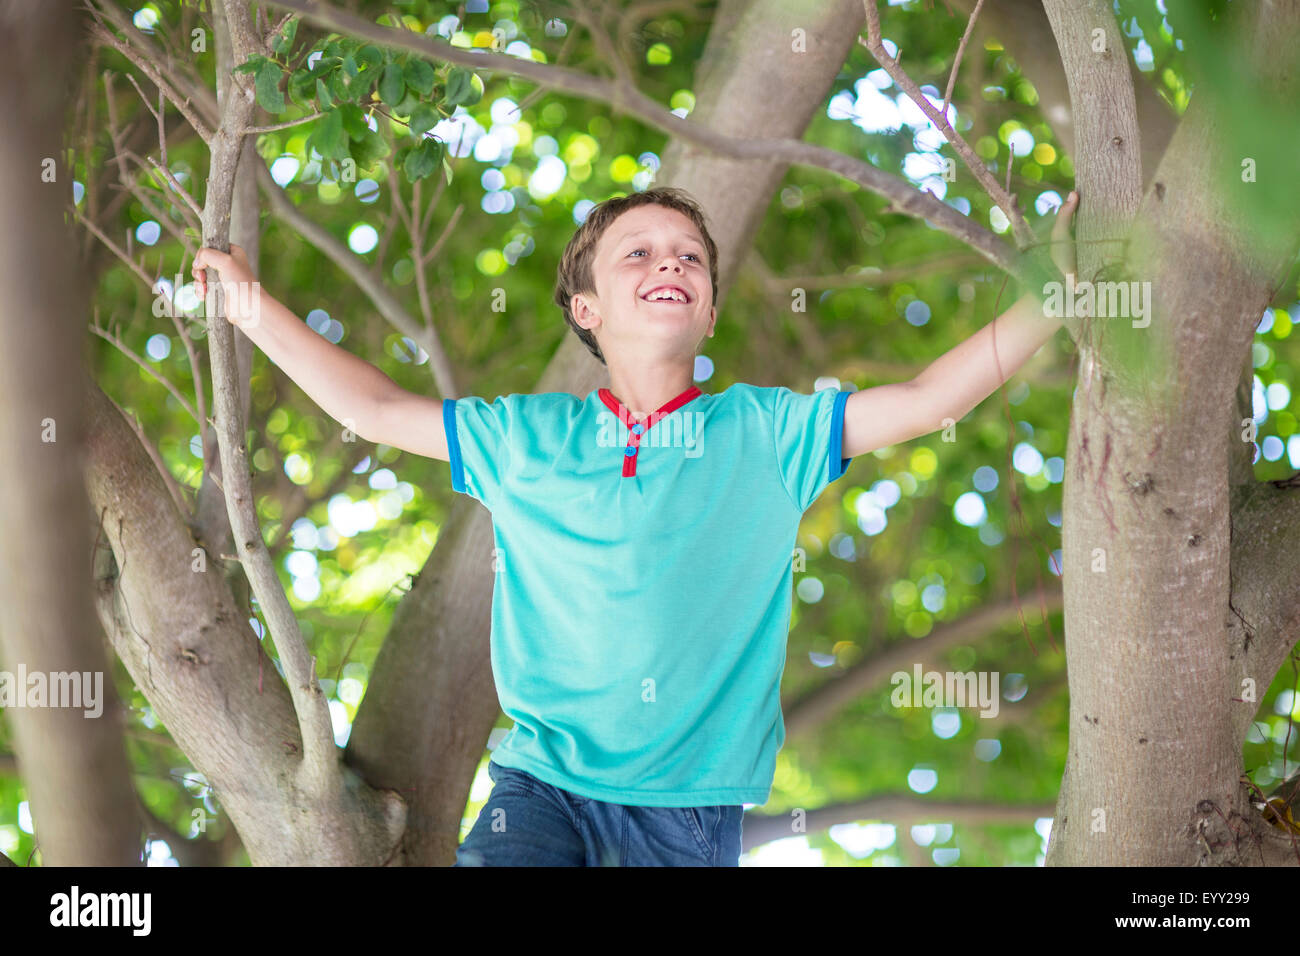 Low angle view of Caucasian boy climbing tree Stock Photo